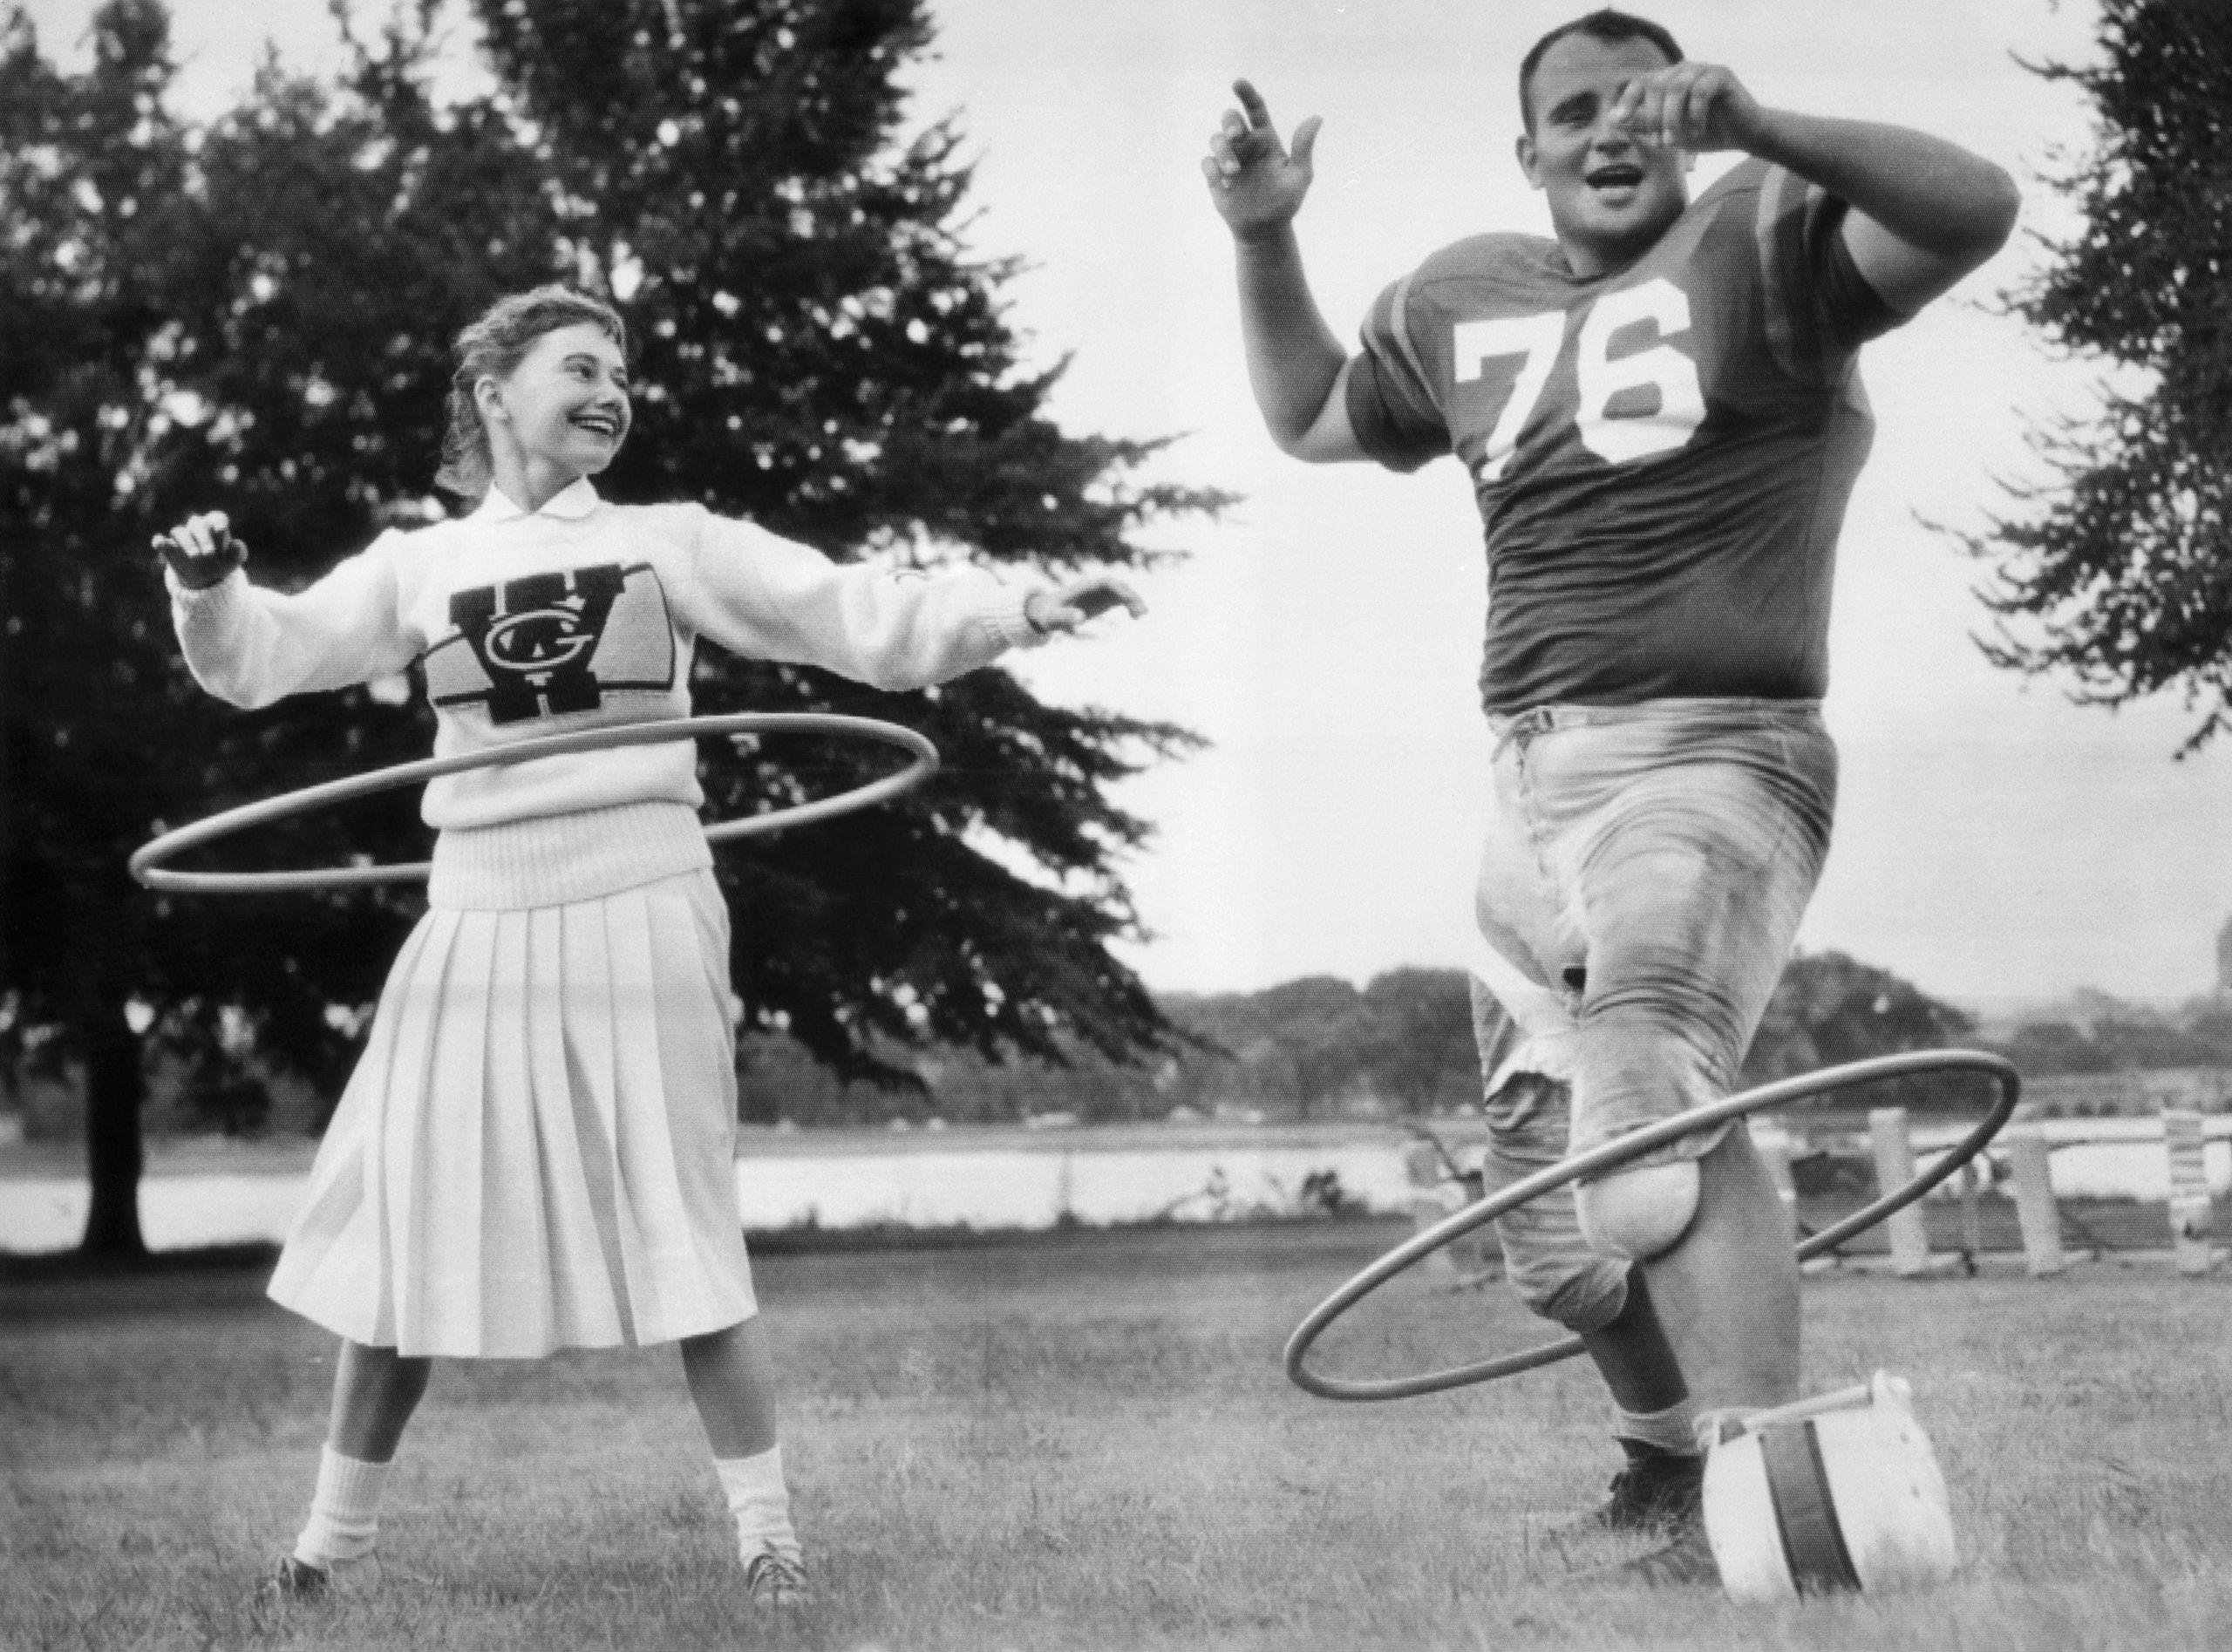 George Washington University cheerleader Anne Sneeringer unsuccessfully attempts to coach Ed Rurbach in the art of spinning a